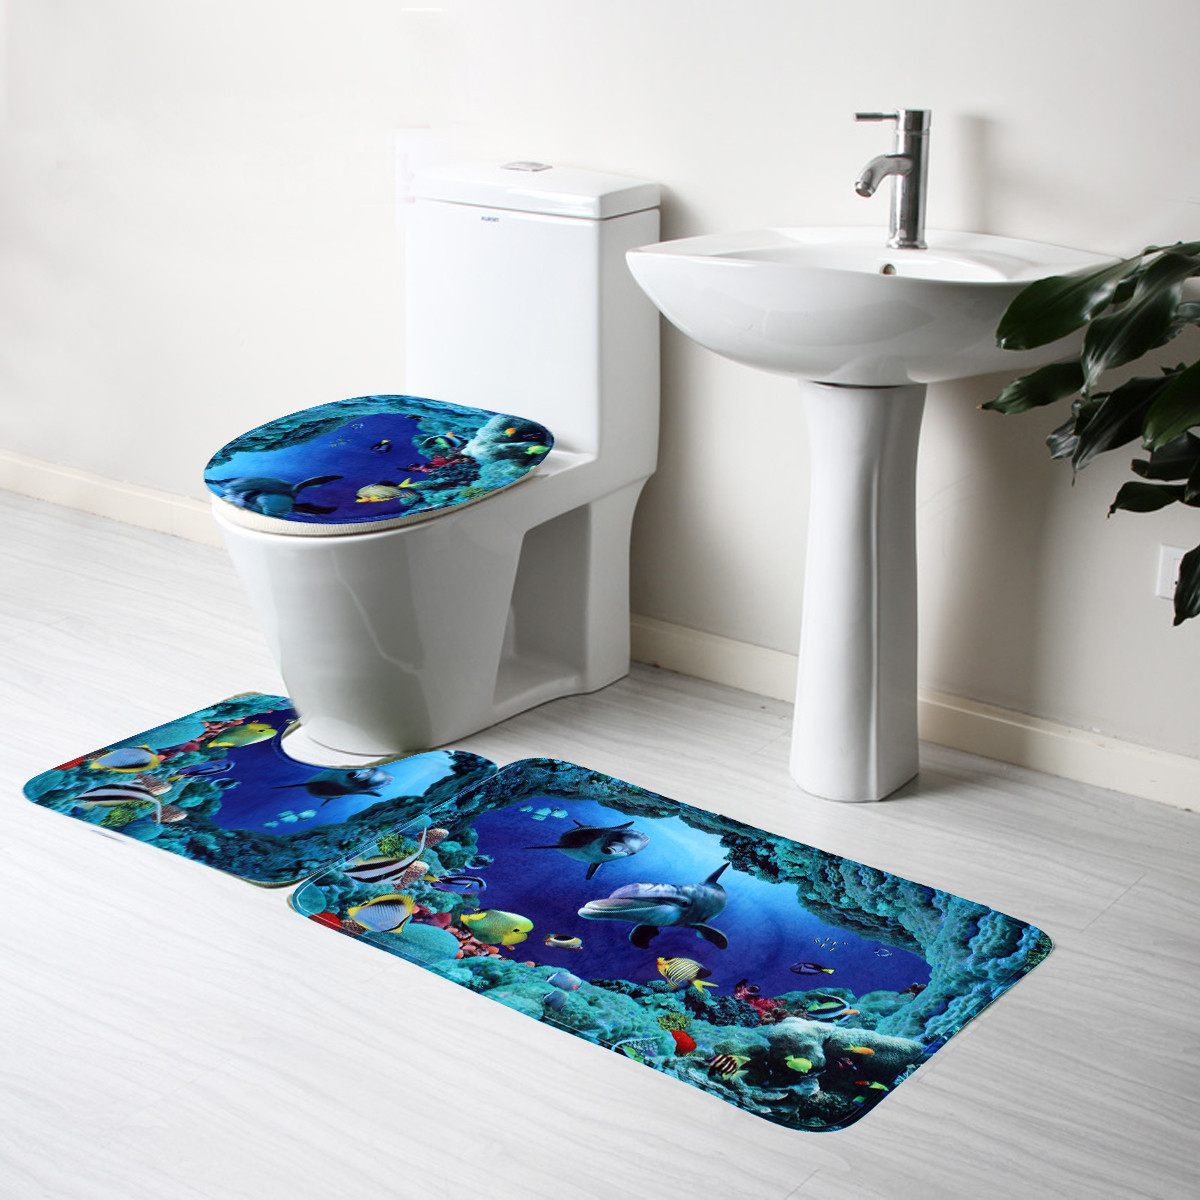 Blue Ocean Bath Rugs Set Velvet Fabric